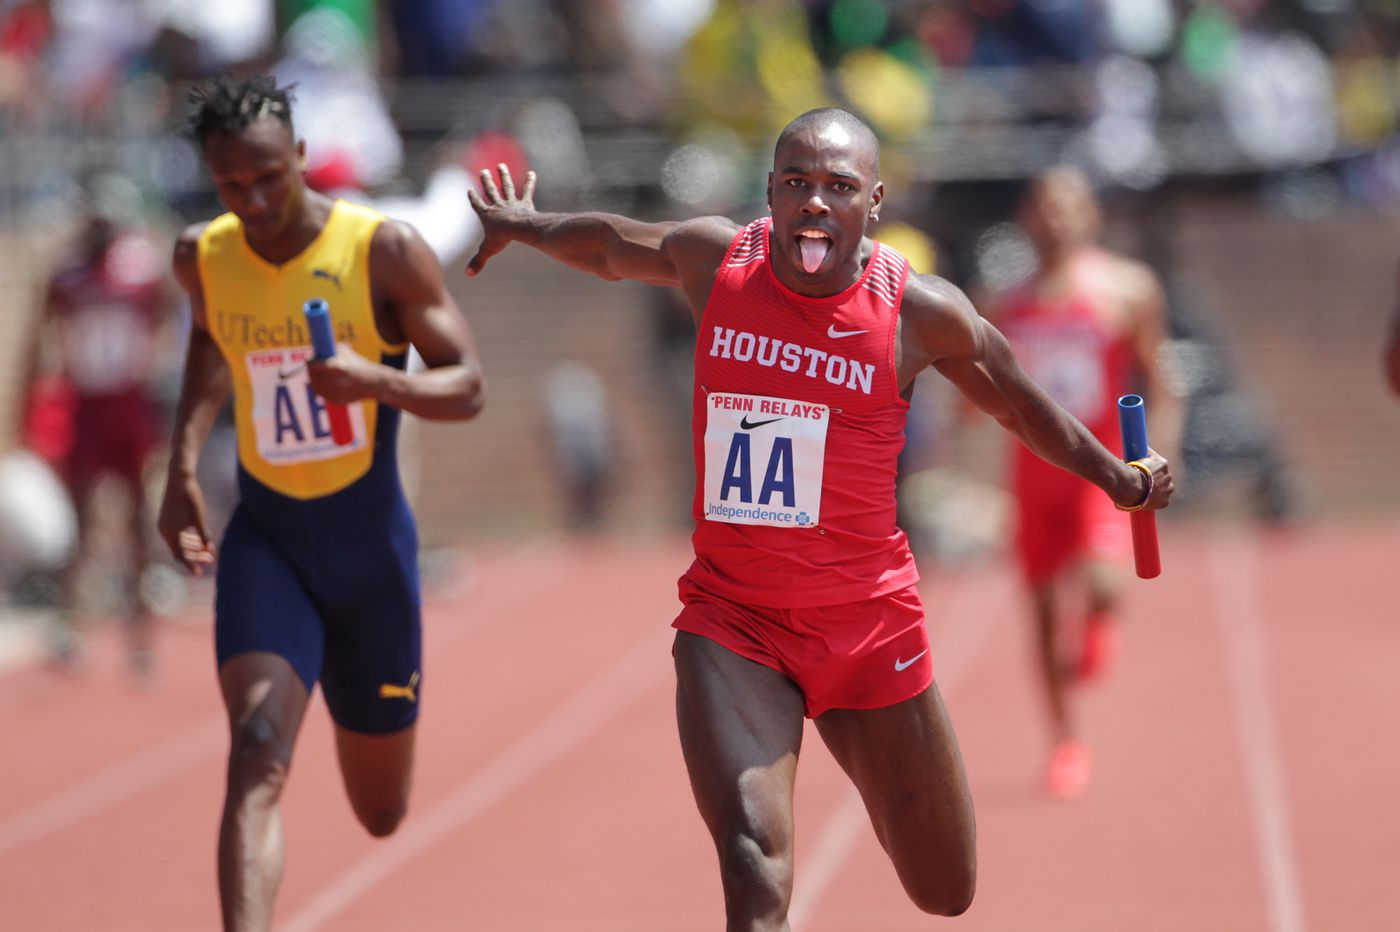 Mike Rodgers, Cameron Burrell and Raevyn Rogers lead USA vs. the World field at Penn Relays